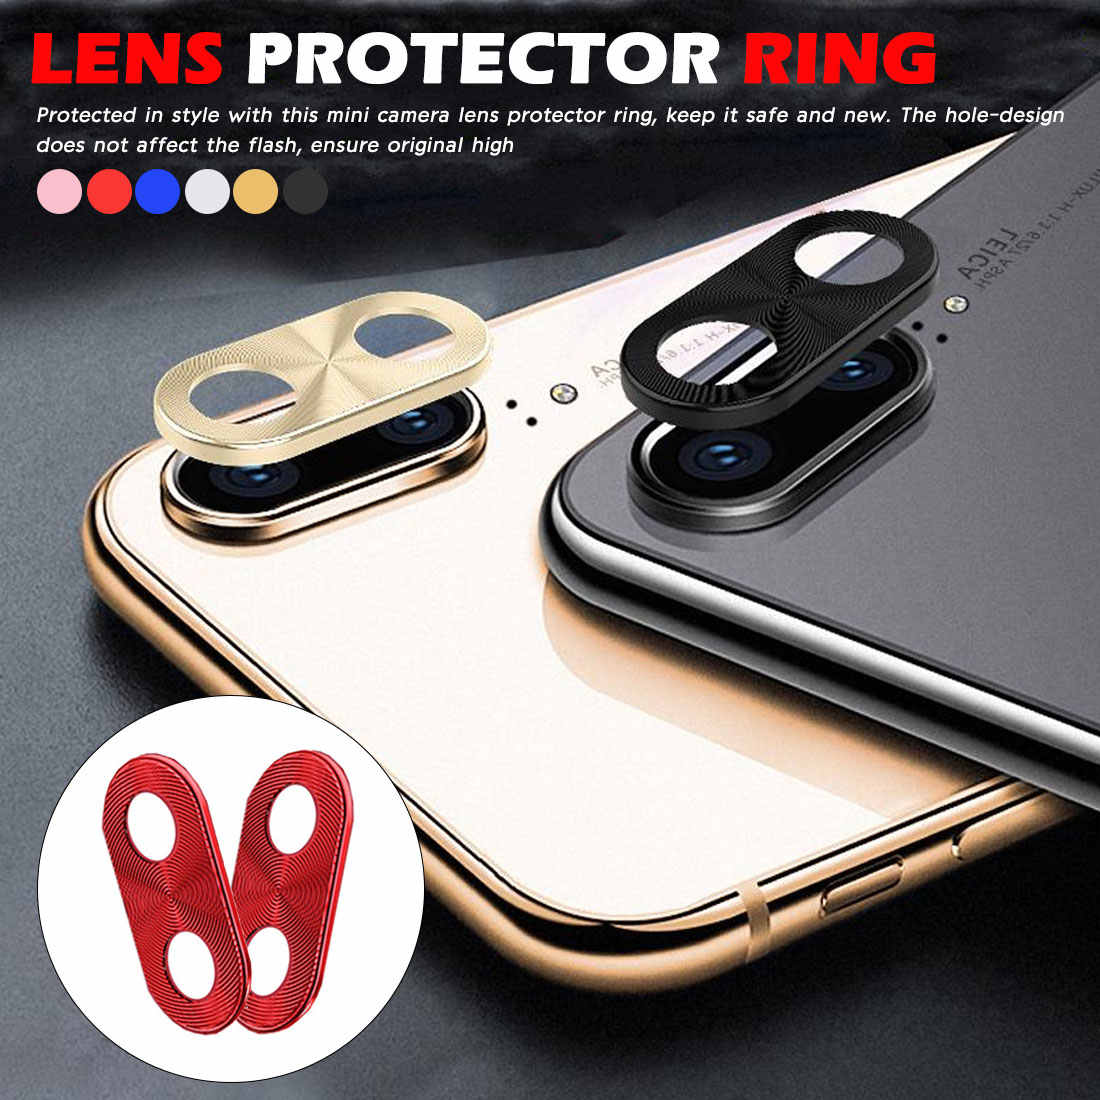 P30Pro Camera Lens Protector For Huwei P30 Lite 20 Pro Nova 5 5i 4 Lite P Smart Plus 2019 Back Lens Protection Ring Bumper Coque